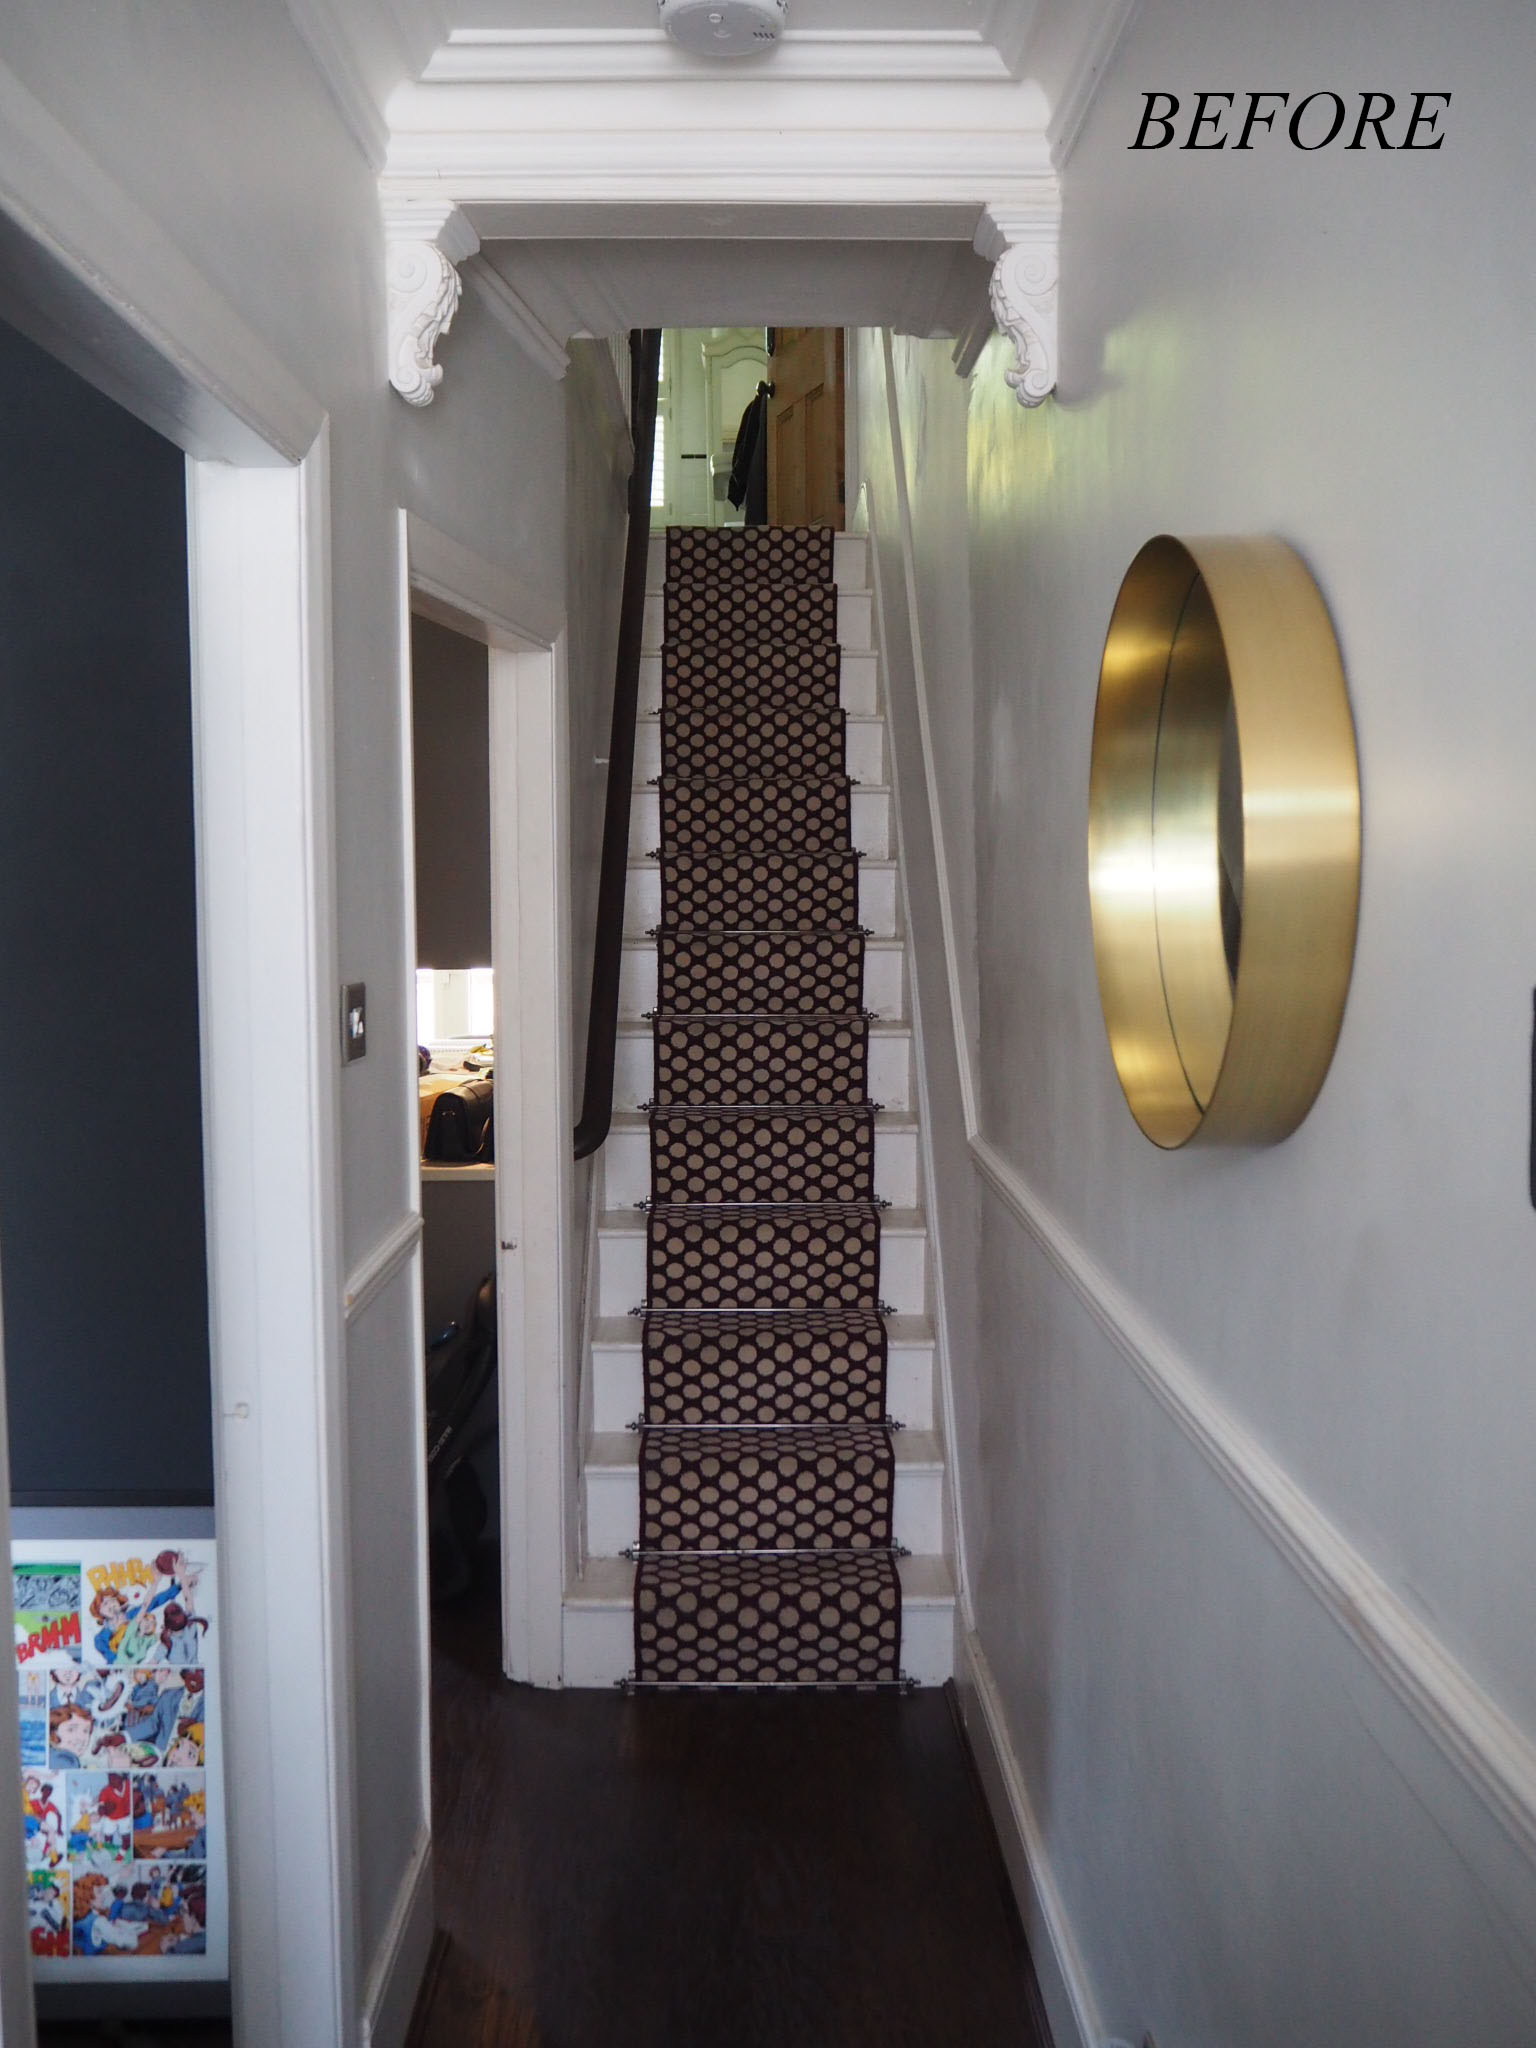 Before shot of the entrance hallway.